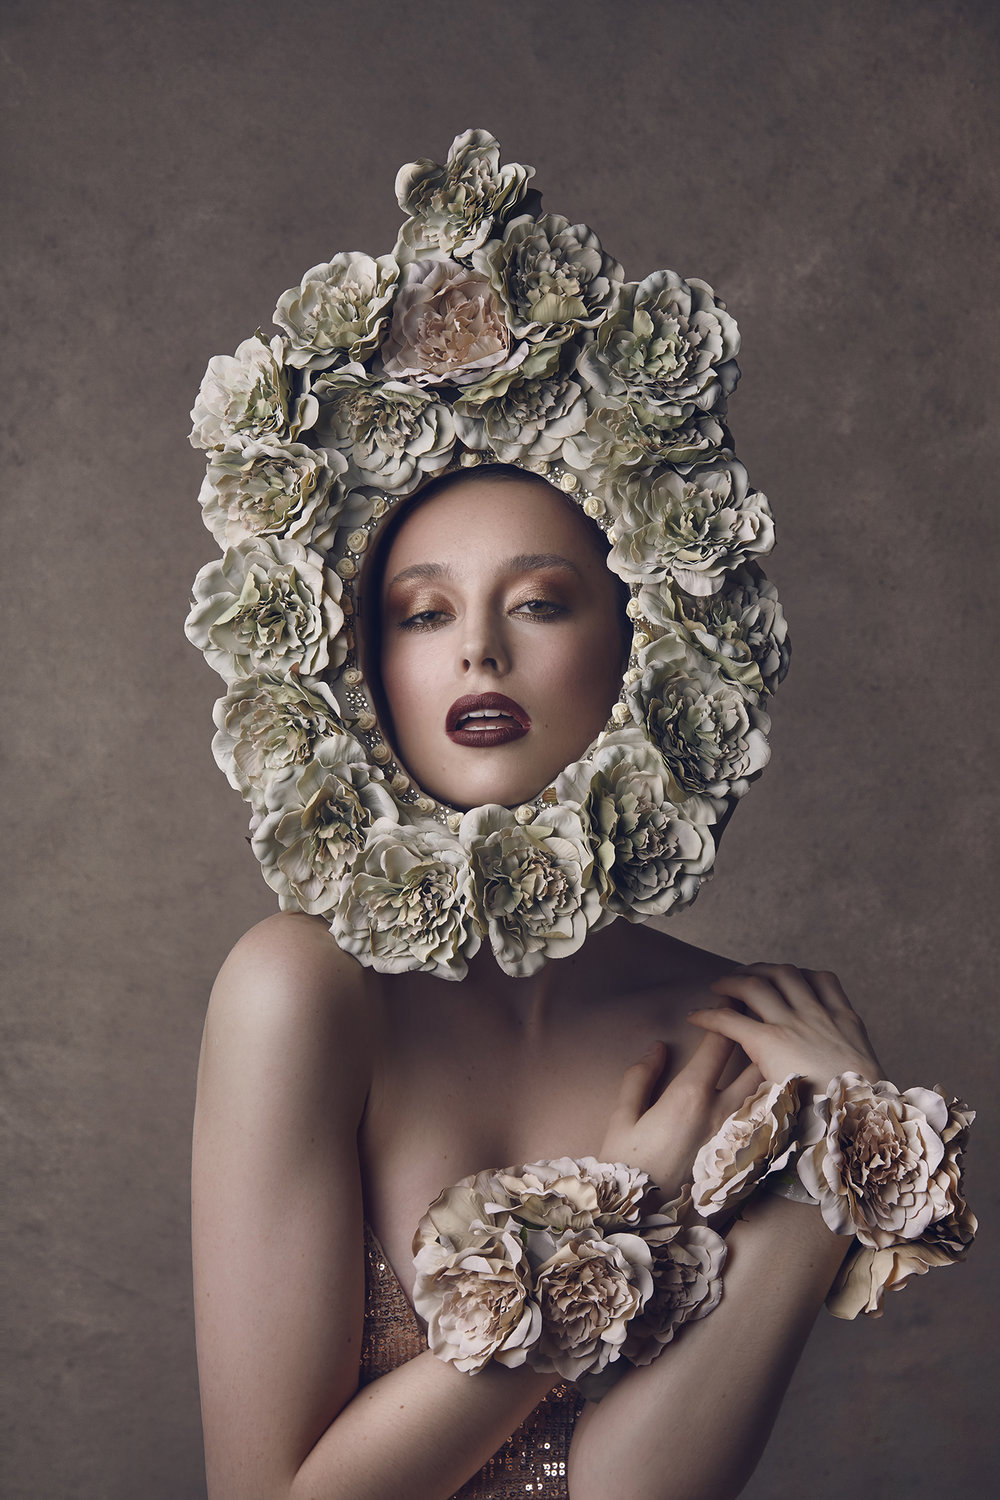 The-Flower-Book-by-Dana-Cole-floral-headpiece-model-fashion-photography-fine-art-photography-beauty-photo-floral-shoot-4.jpg